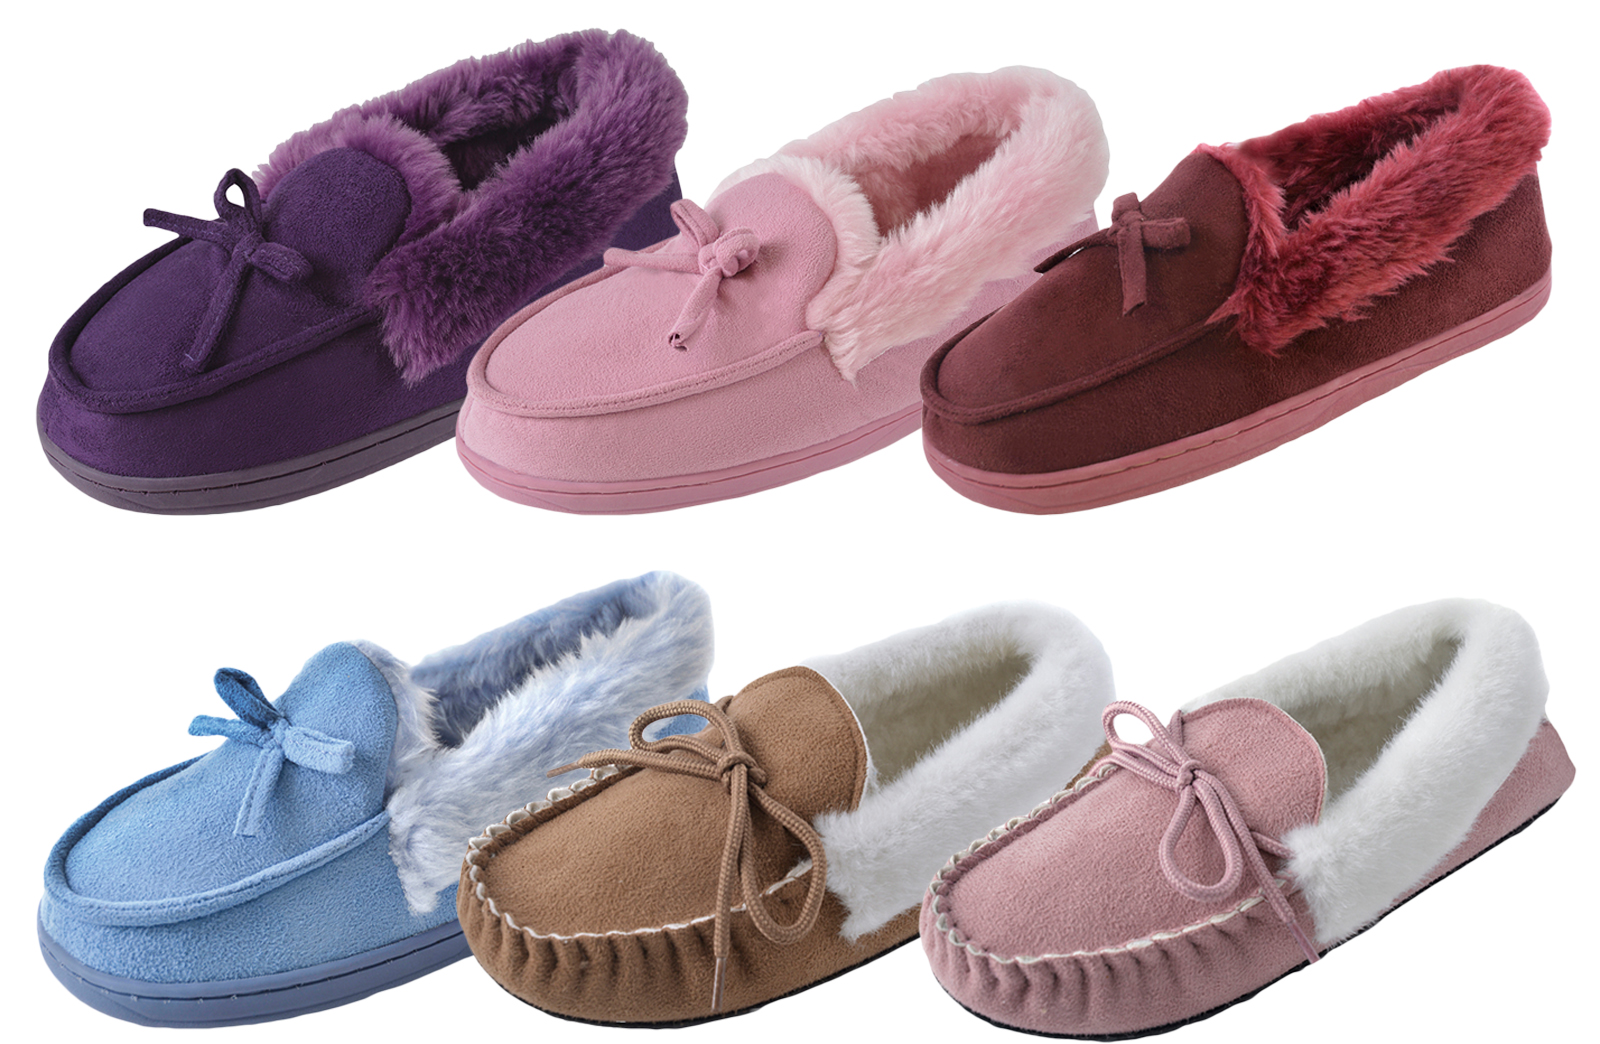 ad8d34d0d1899 Image is loading Womens-Luxury-Faux-Fur-Lined-Moccasins-Ladies-Comfort-